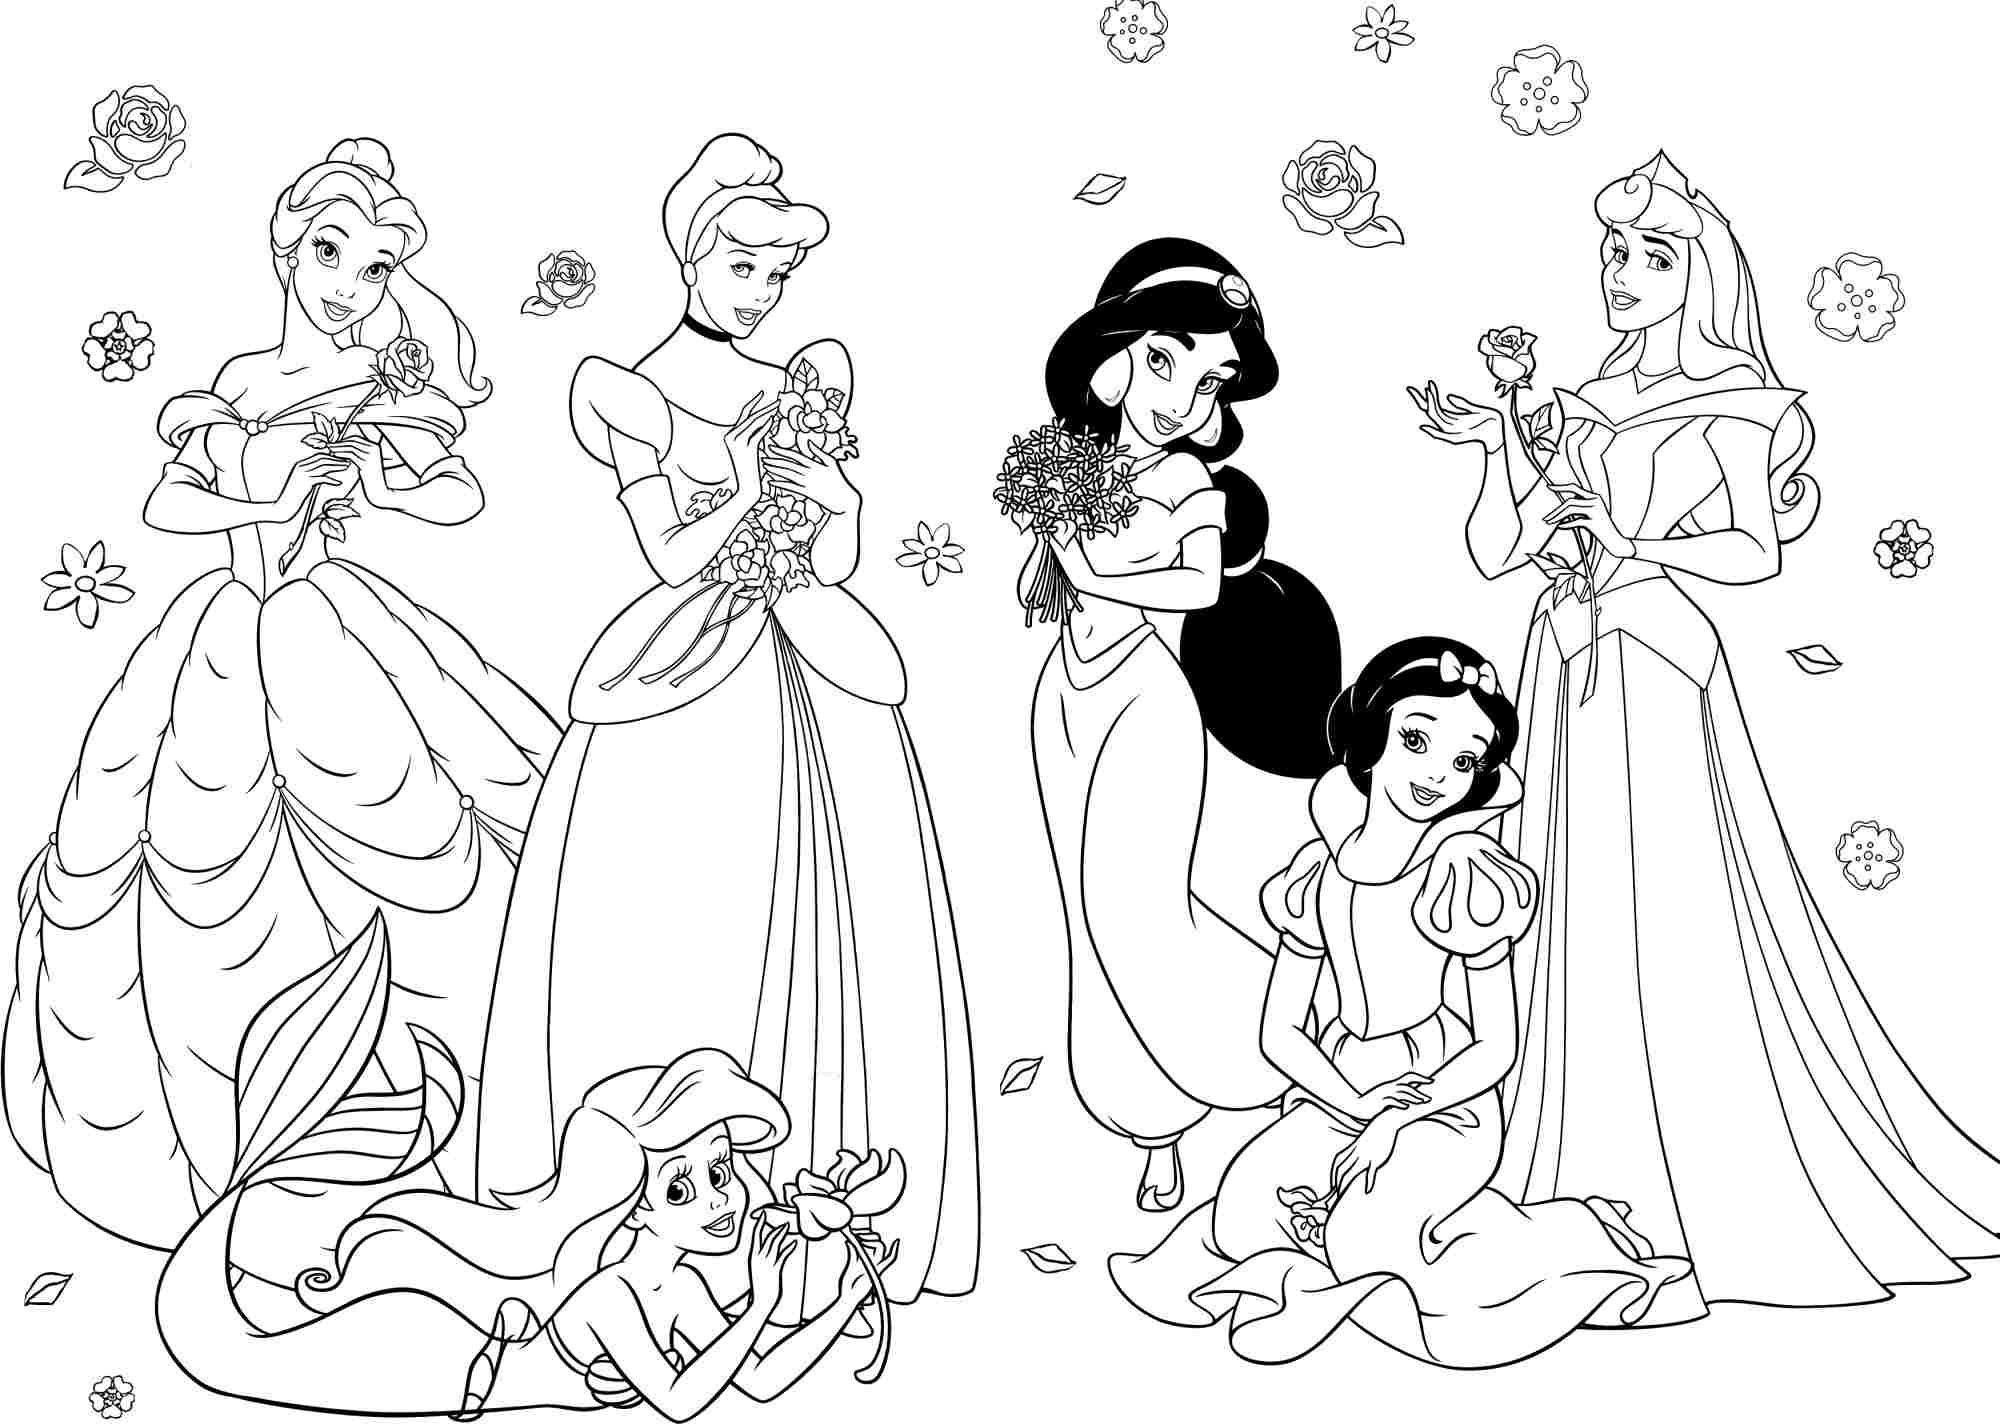 Disney Princess Coloring Pages Printable In 2021 Disney Princess Coloring Pages Disney Coloring Pages Princess Coloring Pages